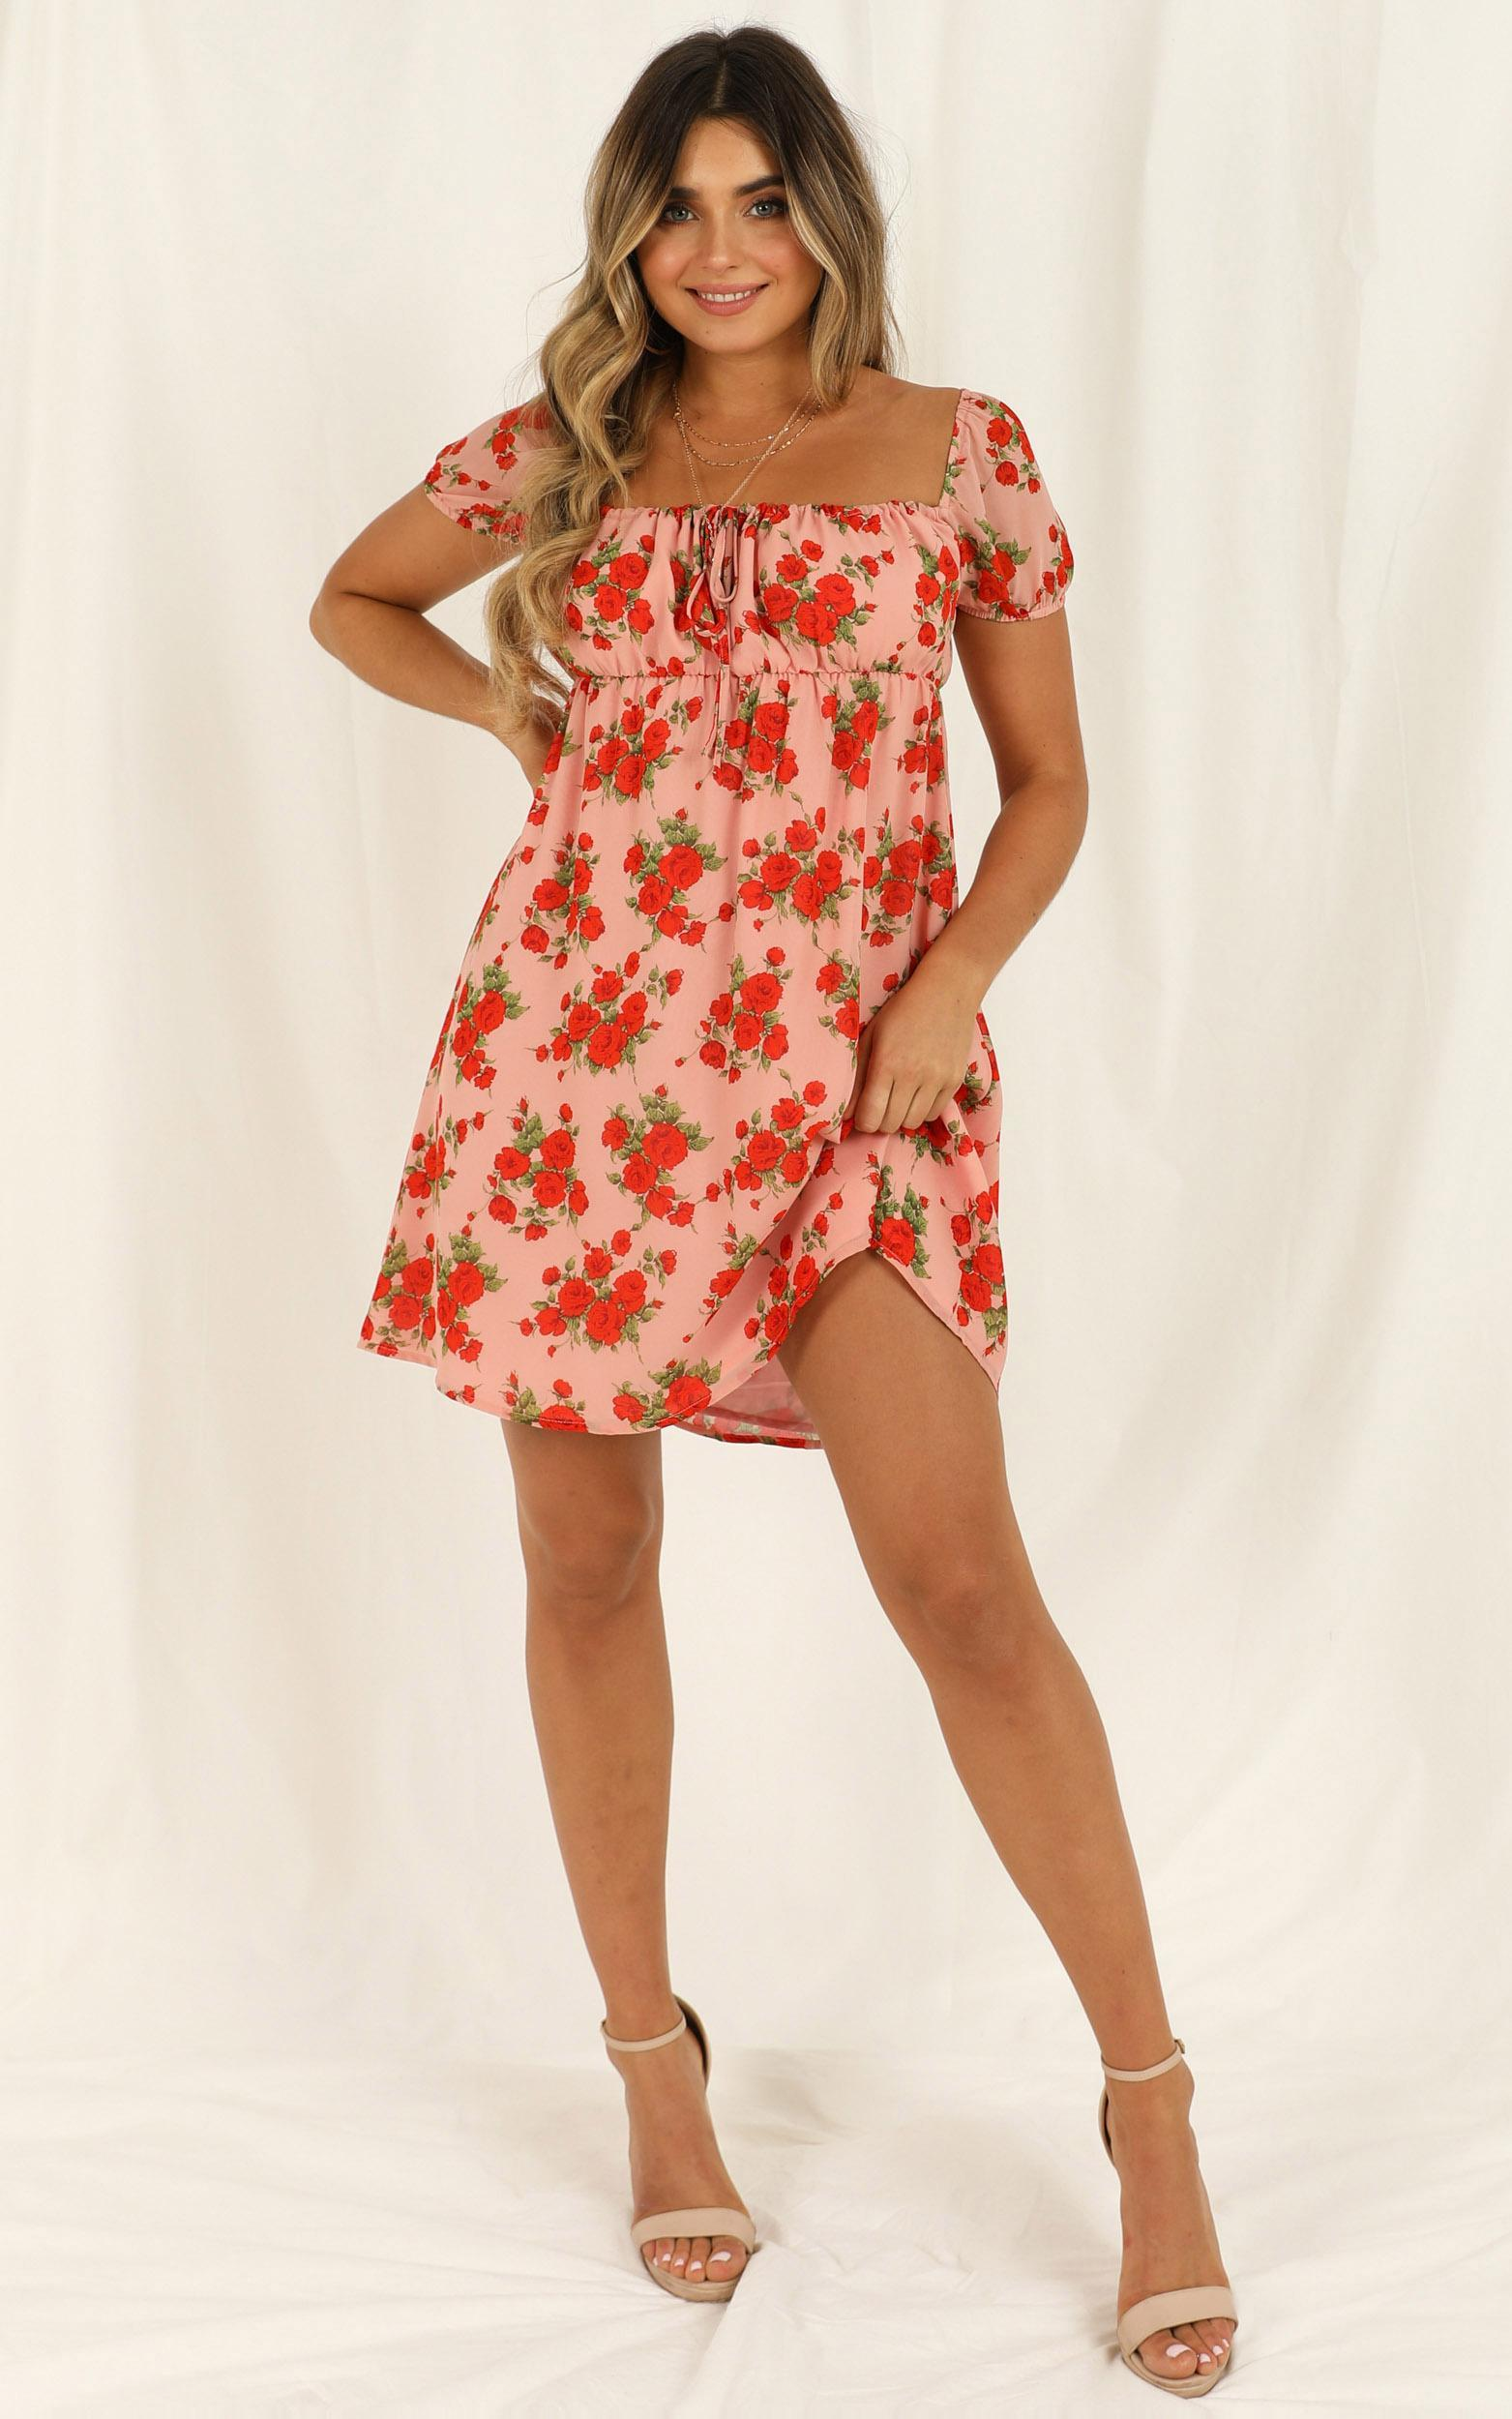 Lunch Date Dress in peach floral - 20 (XXXXL), Pink, hi-res image number null